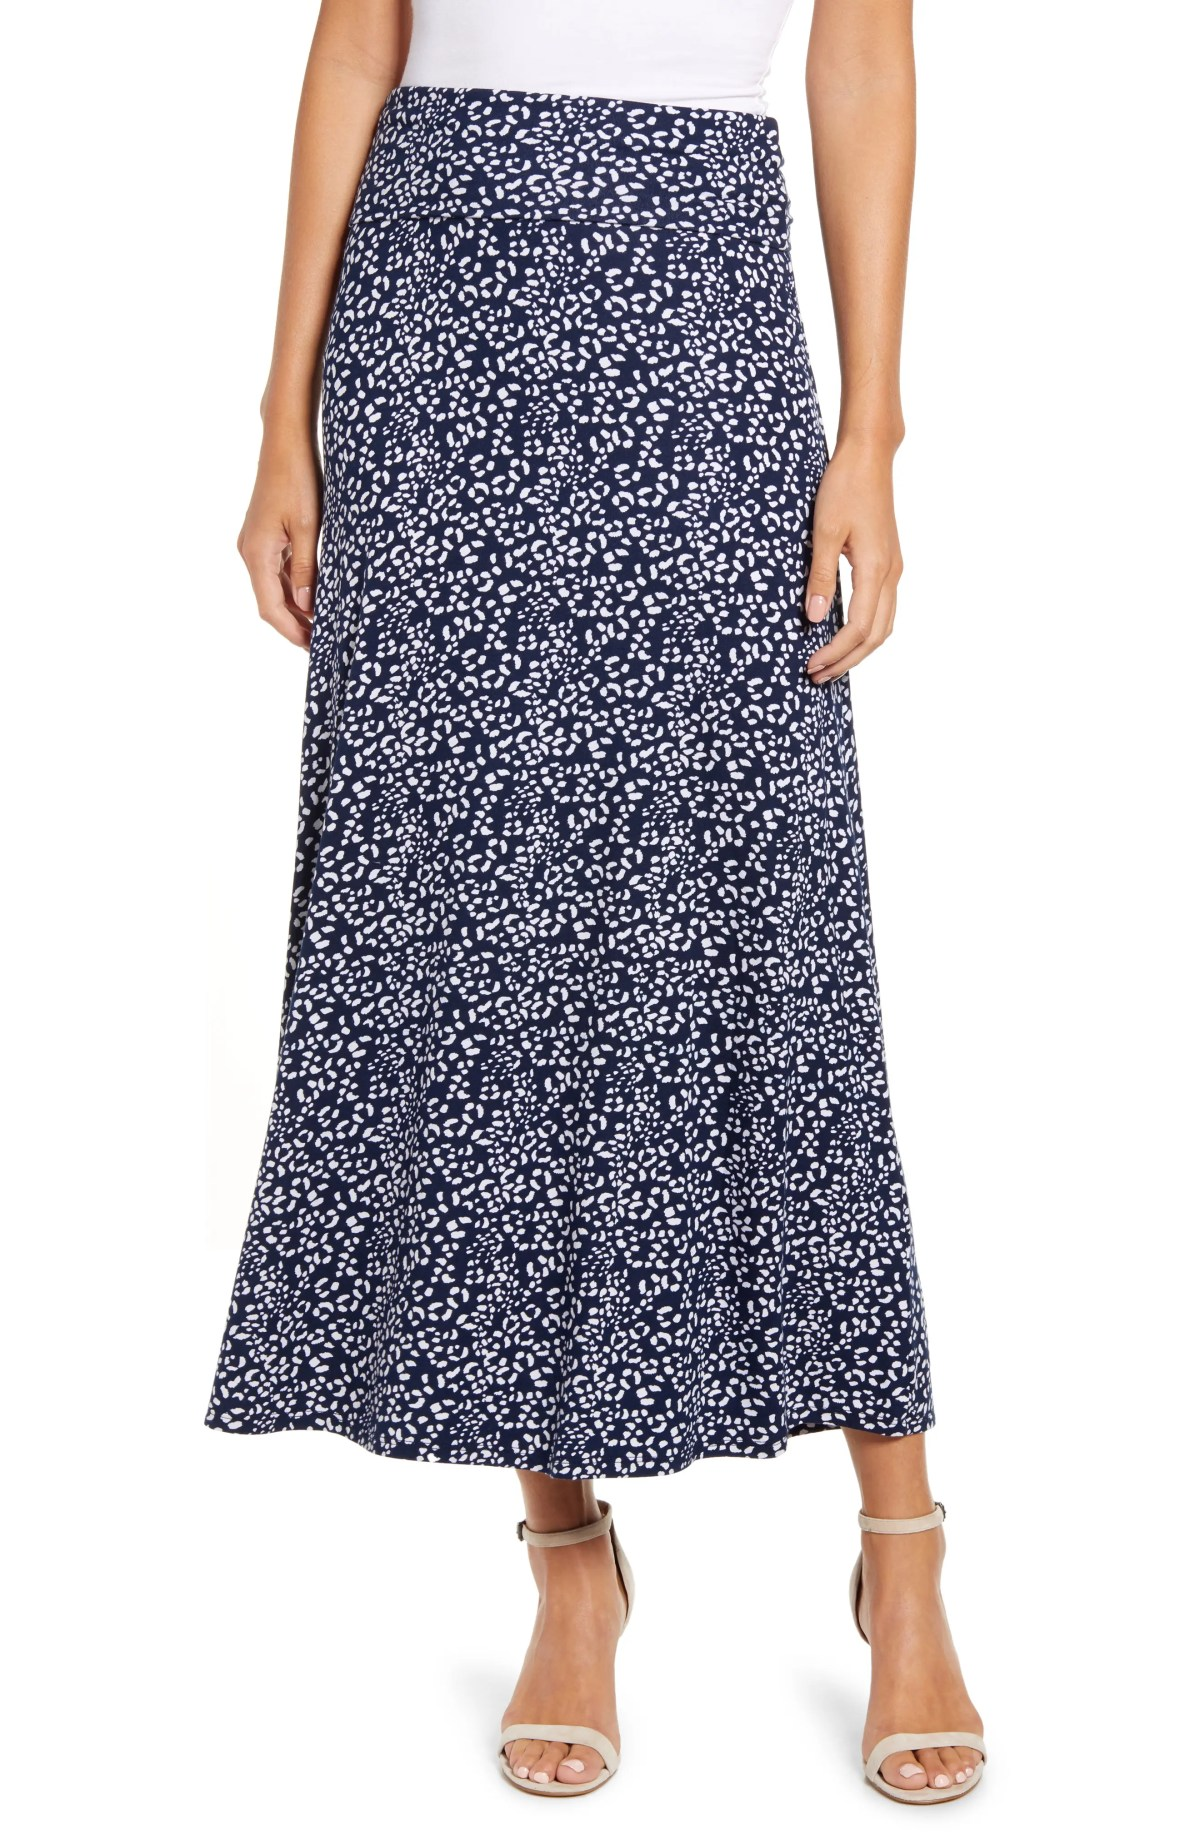 LOVEAPPELLA Roll Top Print Maxi Skirt, Main, color, NAVY/ IVORY